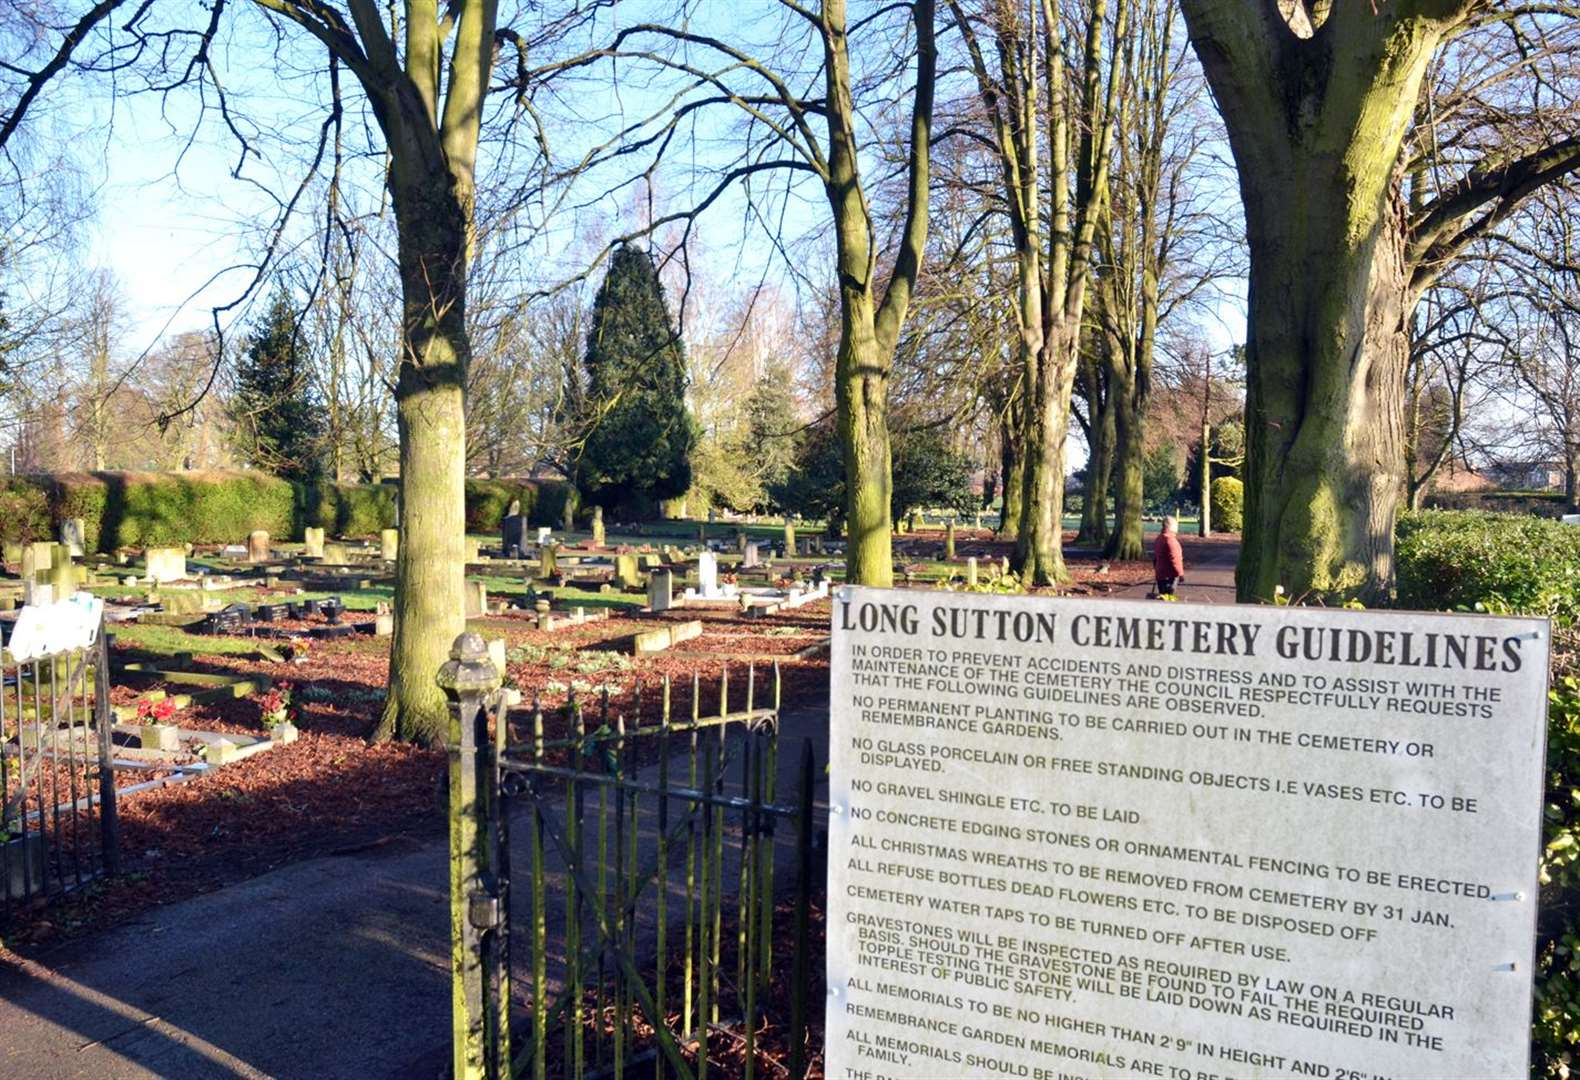 Opinions differ on idea for 'green burial places' as new cemeteries